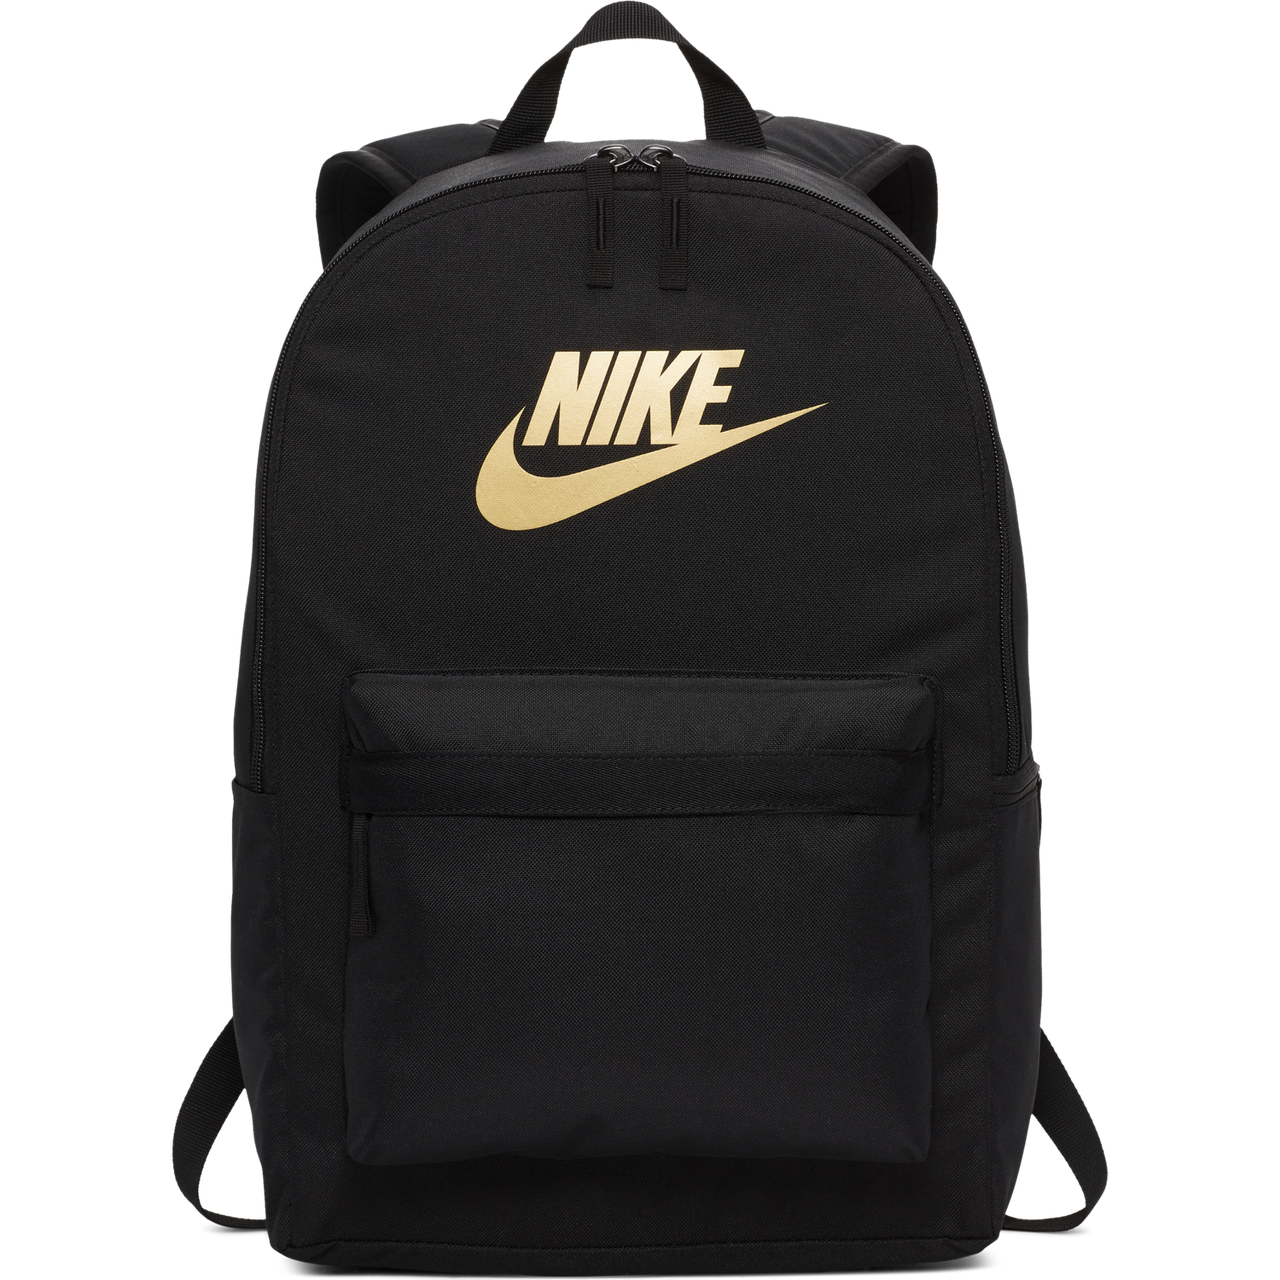 Рюкзак Nike Heritage Backpack 2.0 BA5879-013 Черный (193151310668)